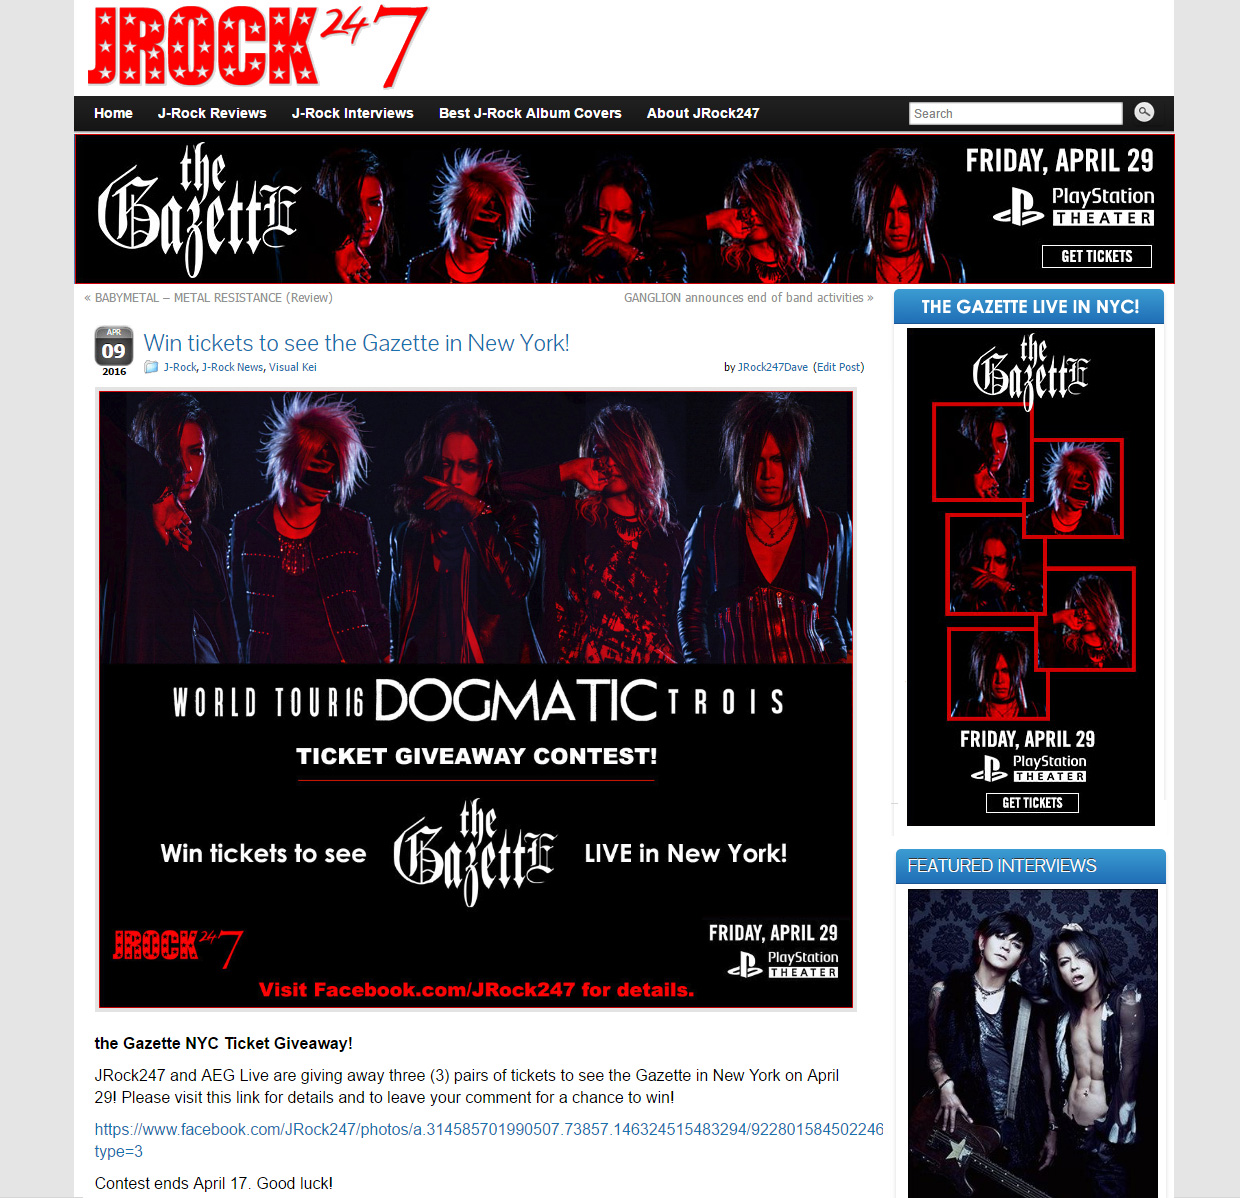 RMMS-The-Gazette-NYC-Campaign-2-JRock247-A